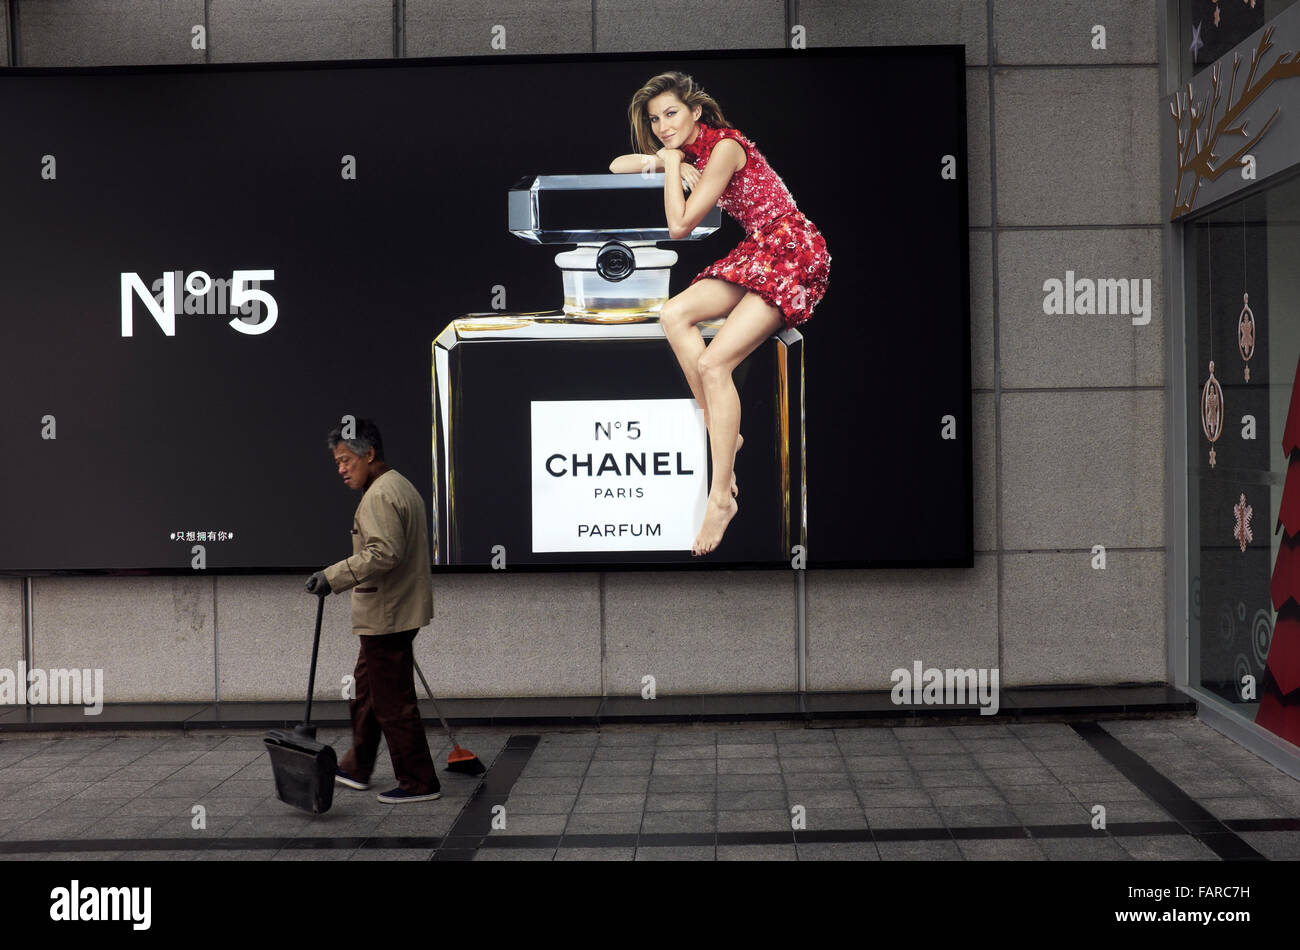 Billboard of CHANEL No. 5 perfume in Shanghai, China. - Stock Image